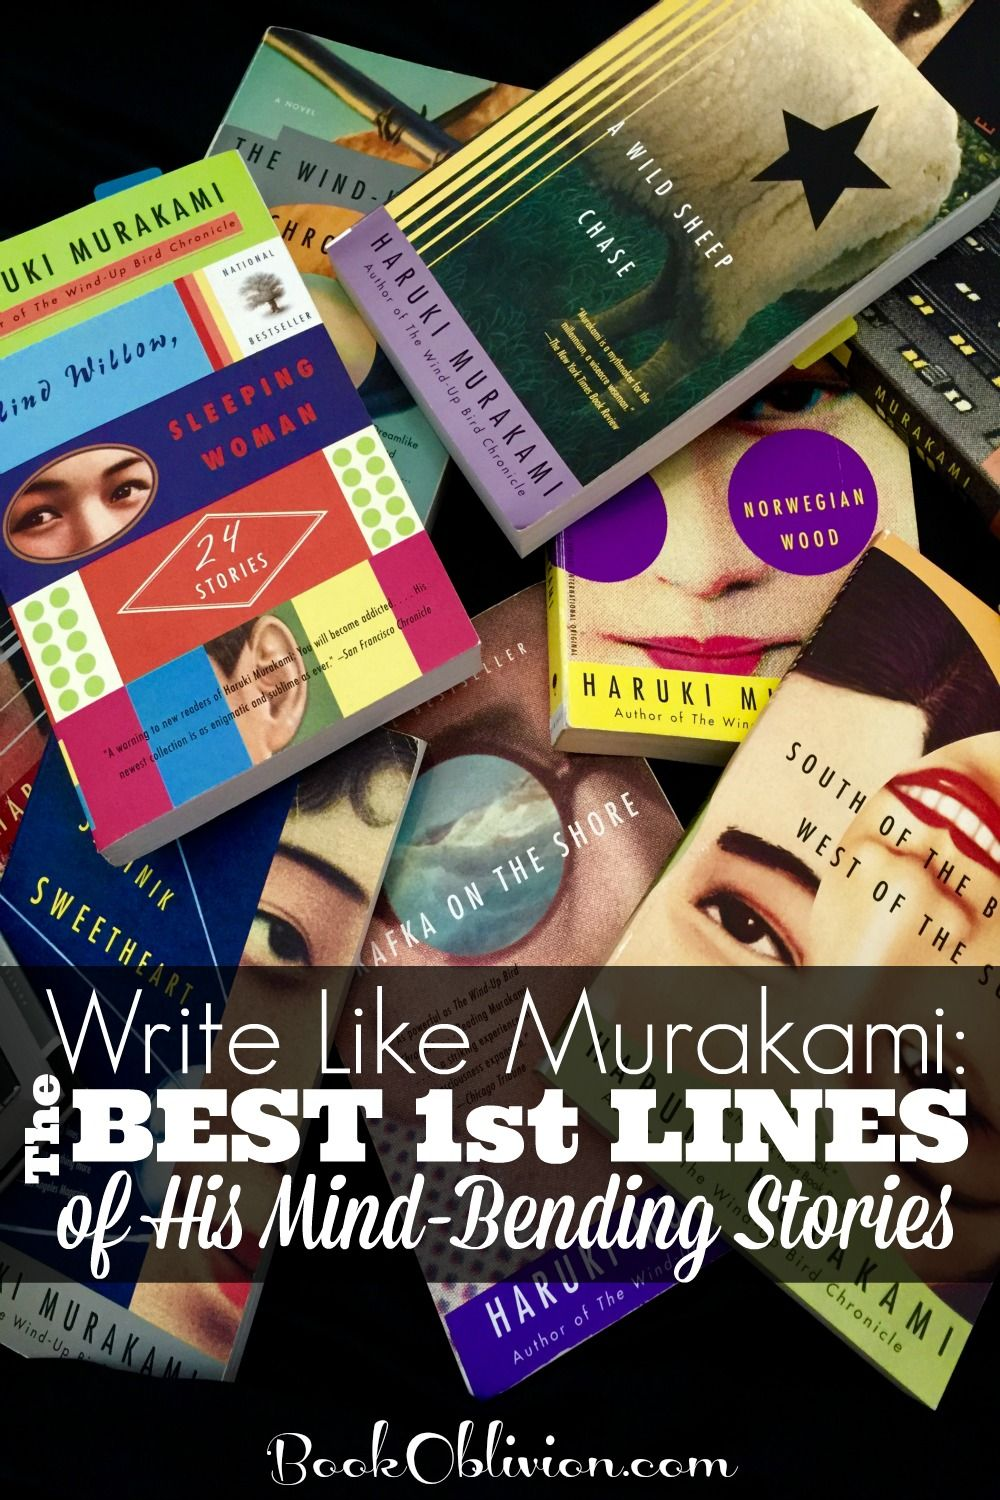 It takes so little time for writers like Haruki Murakami to abduct you into their mind-bending worlds. Revisiting some of these first lines will make you laugh, while others will make you wonder. The rest might even bore you a little, despite how exciting the novel ends up. Here are the best first lines from his most well known short stories, novels, and even his memoir.